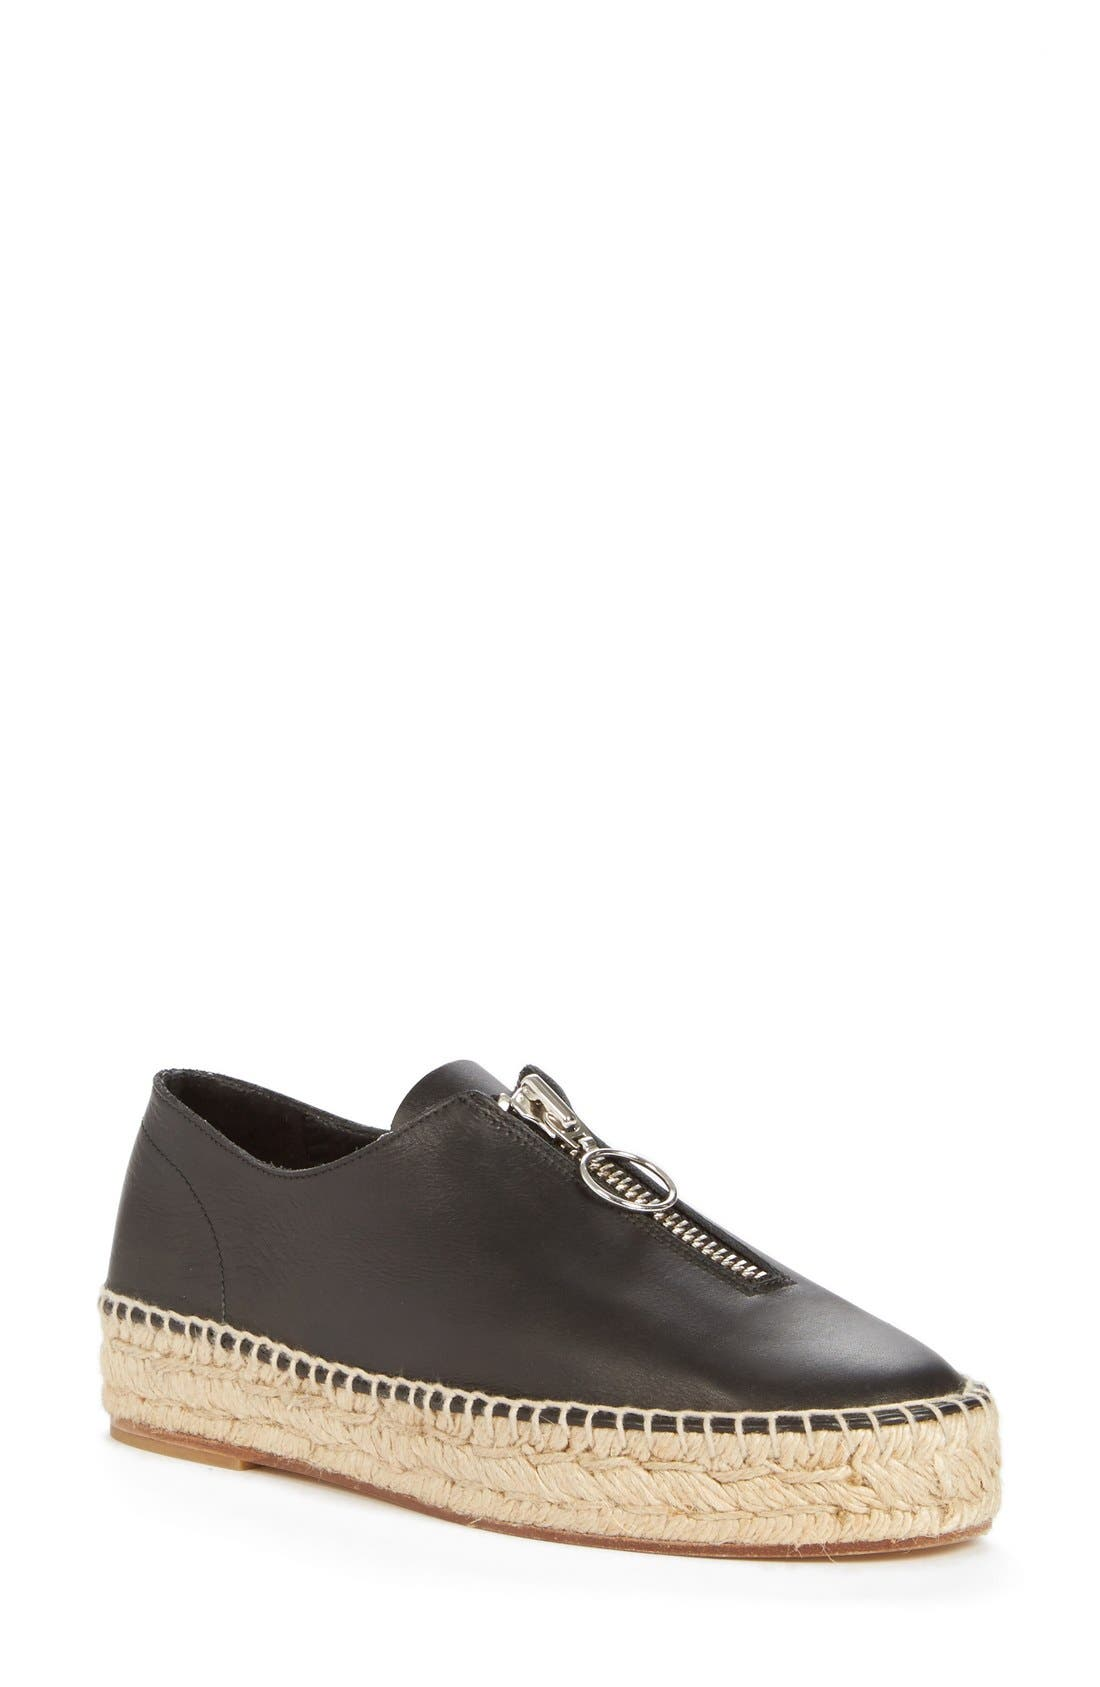 'Devon' Espadrille Flat,                         Main,                         color, Black Smooth Leather